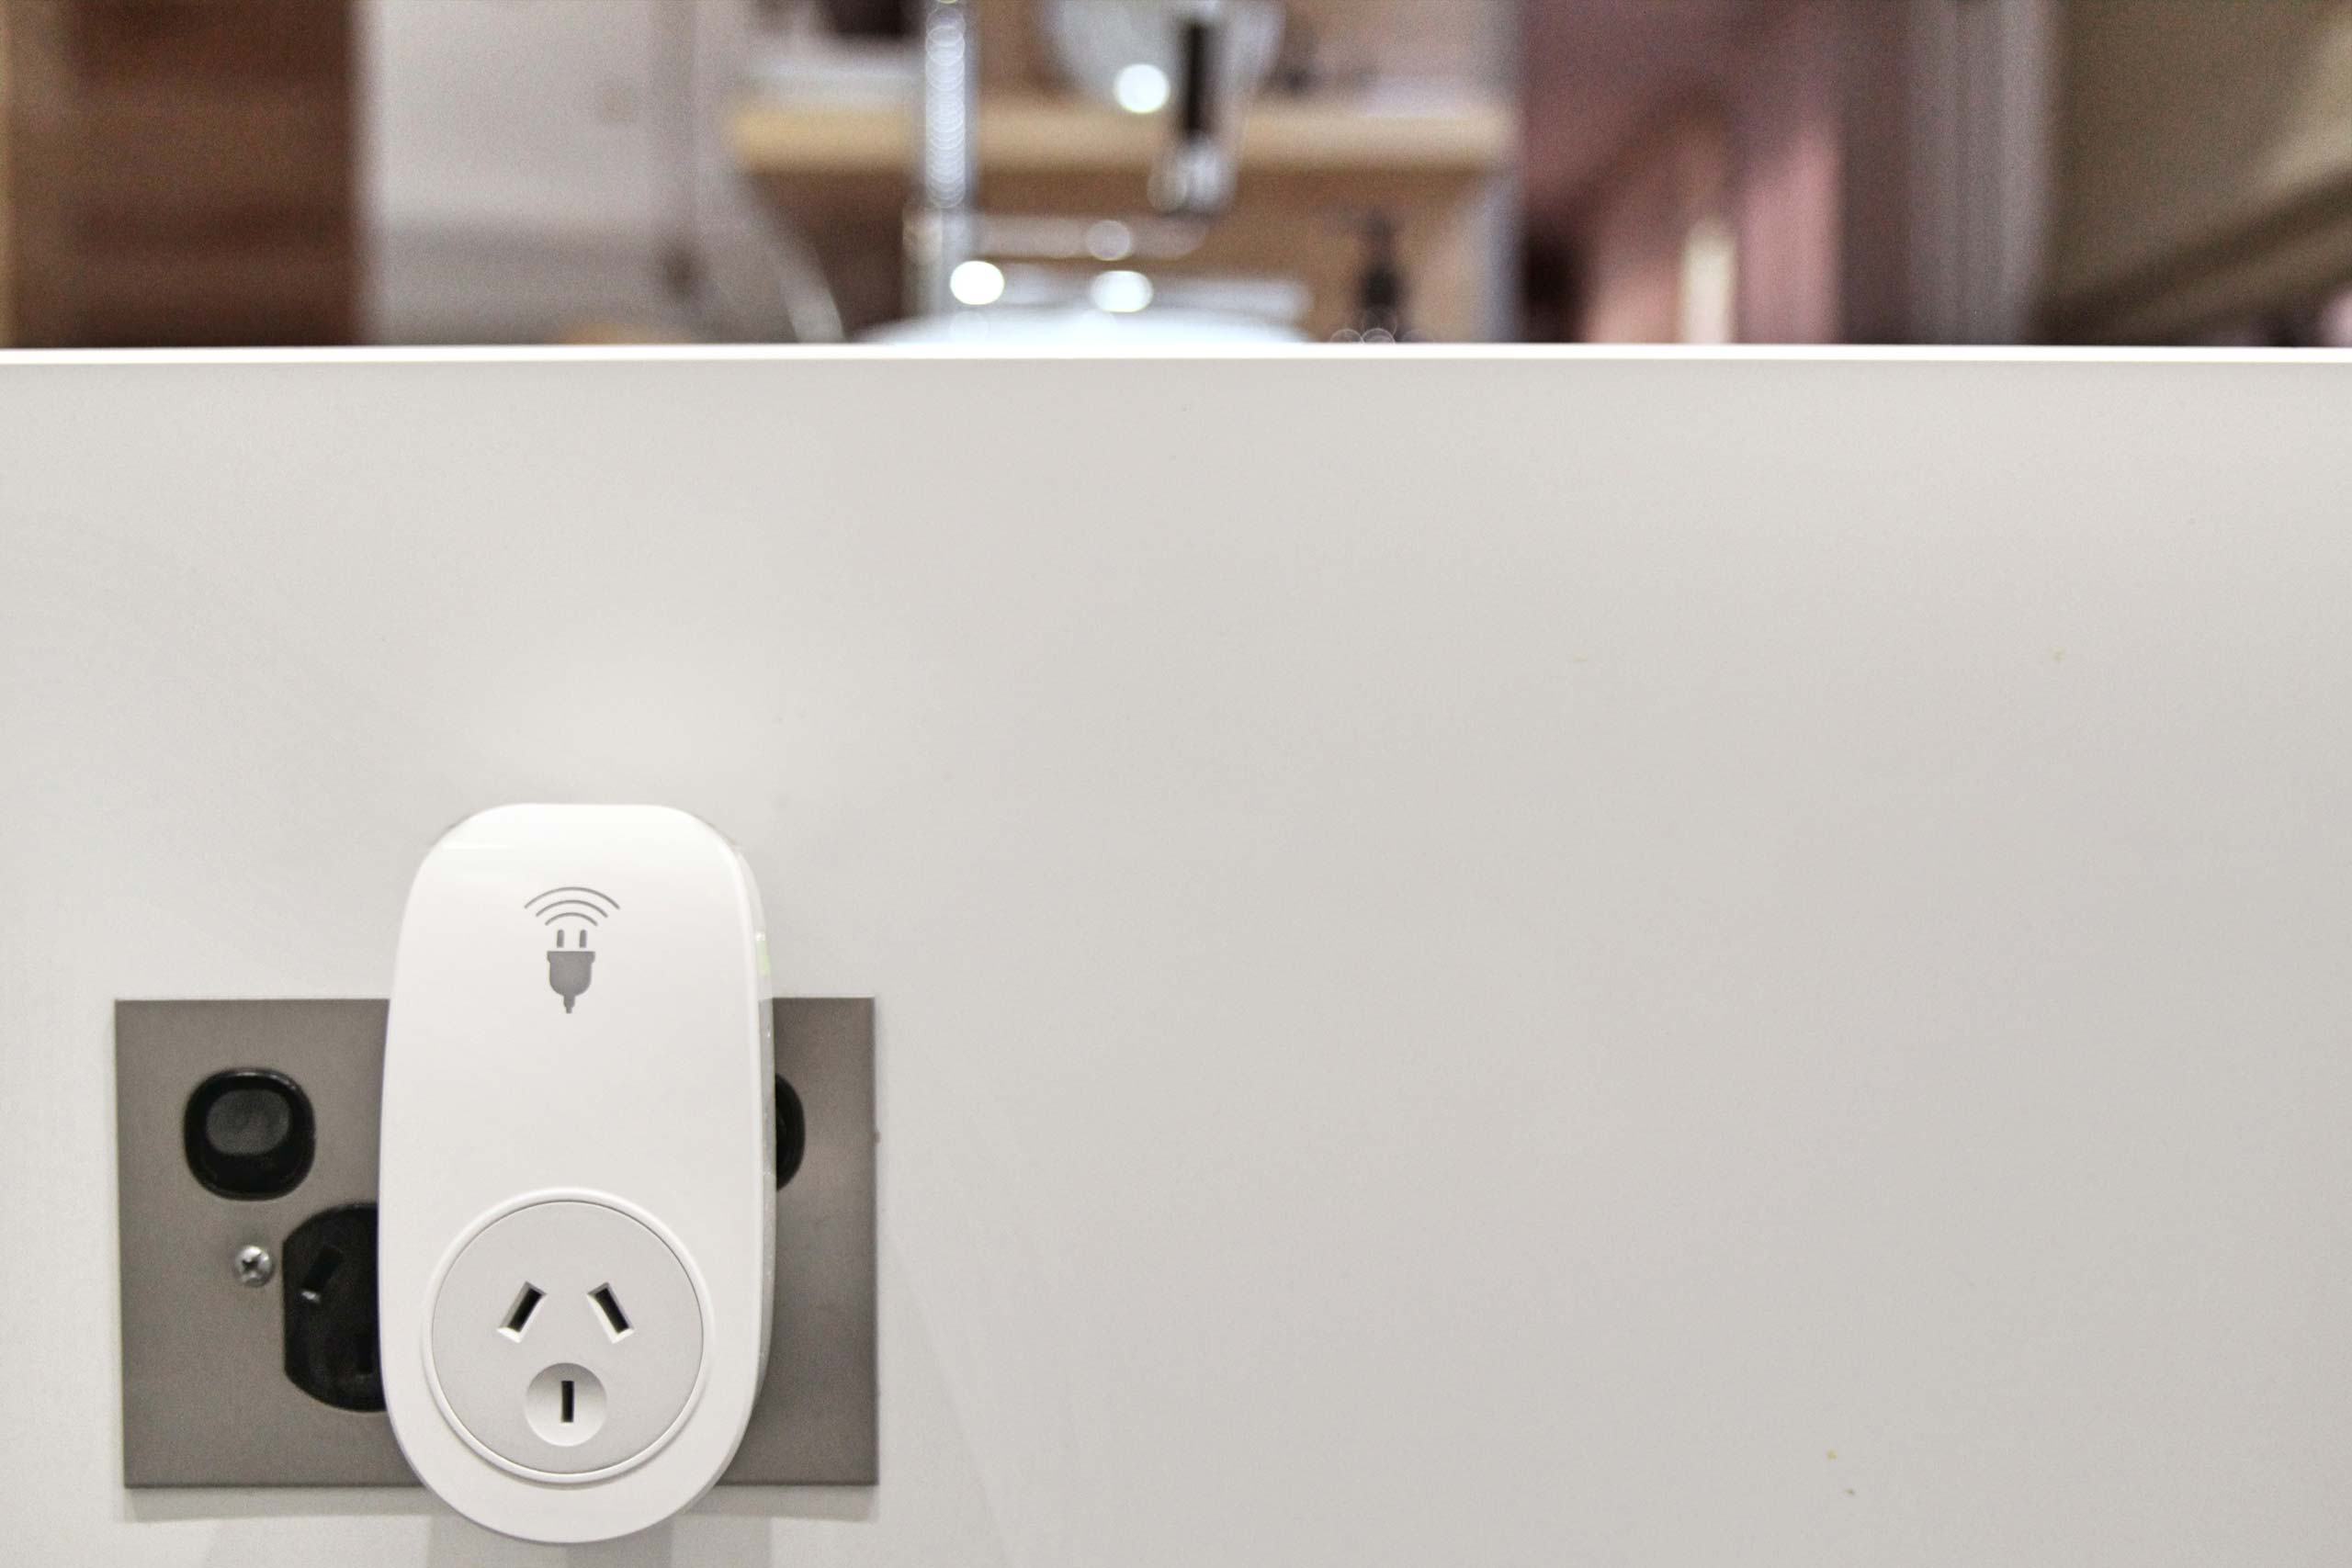 A smart plug is plugged into a modern, metal power point socket.